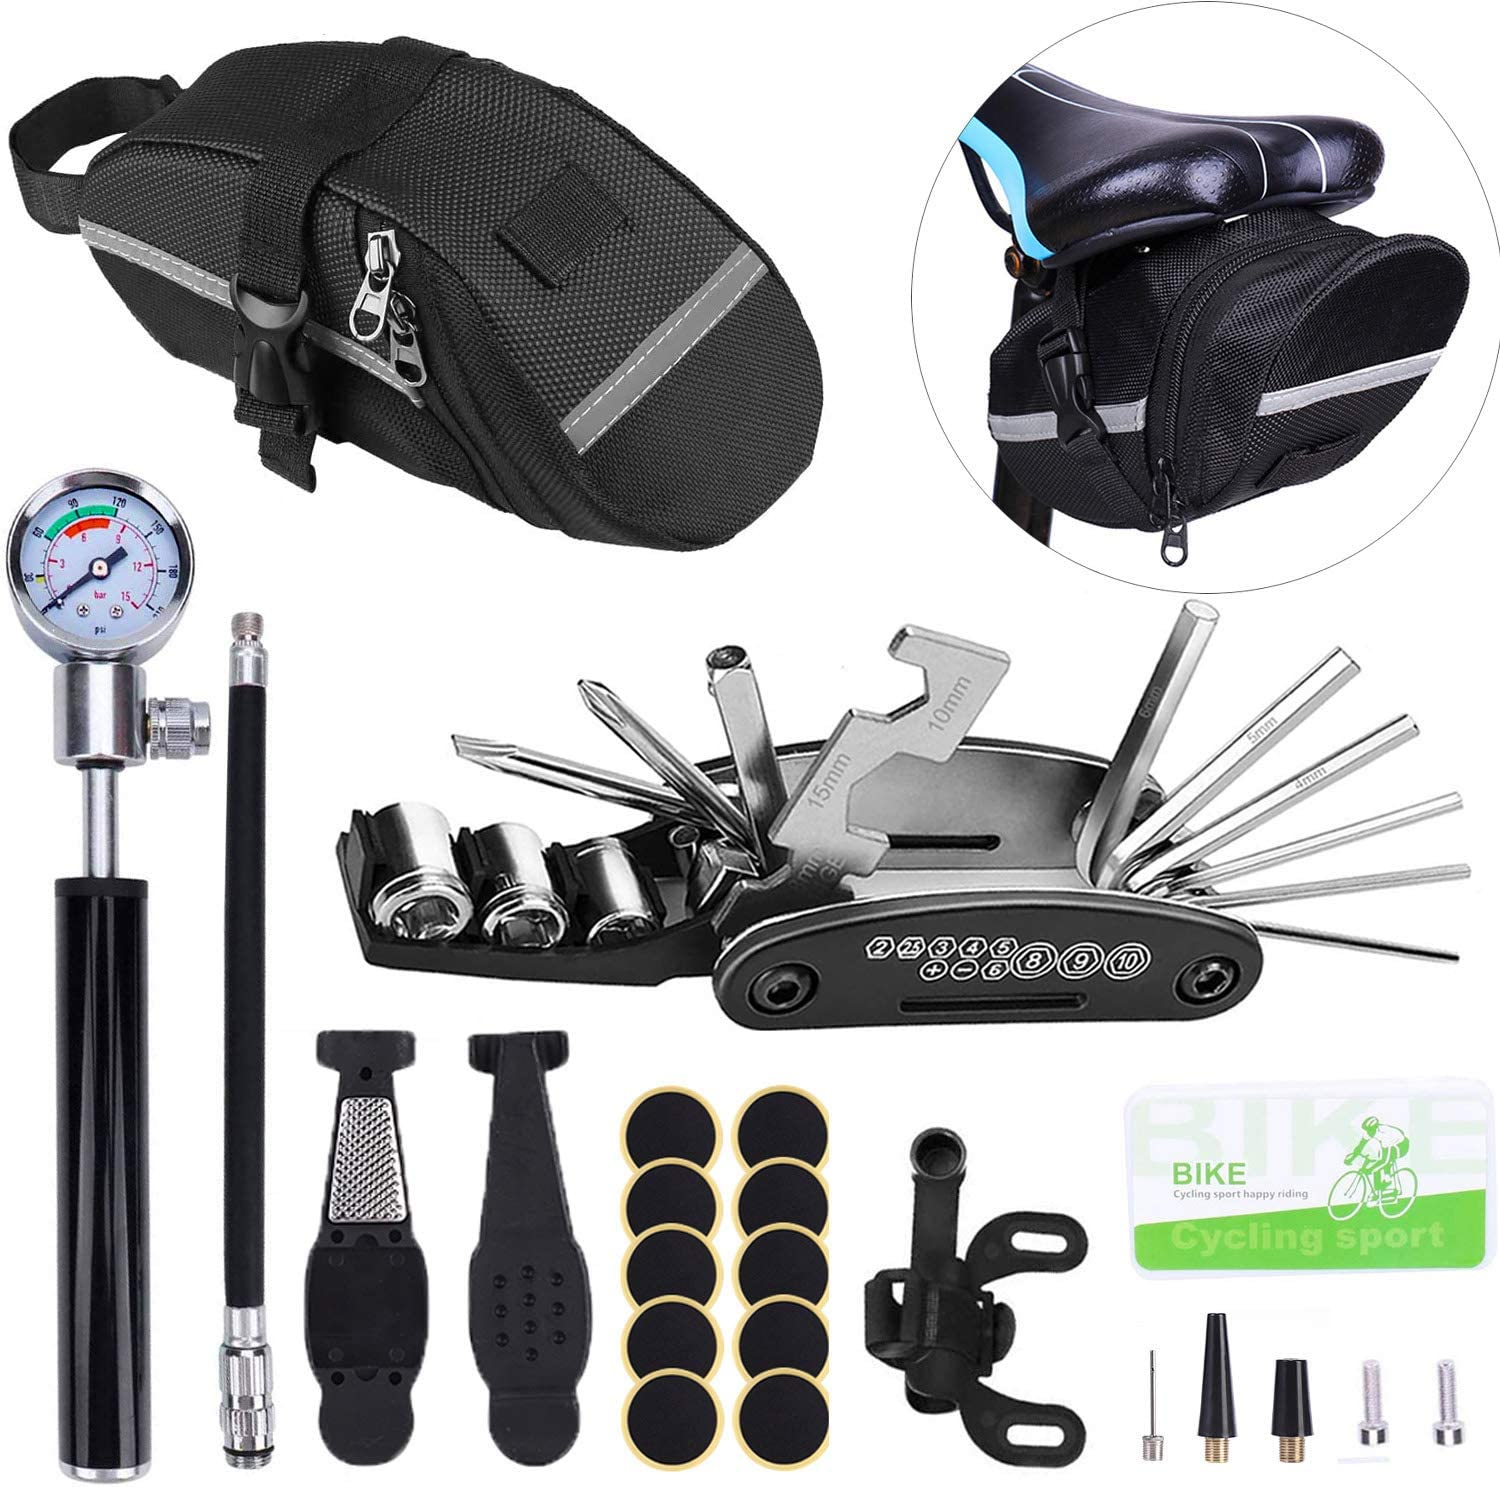 Beacon Pet Bike Tire Repair Kitwith Translated Saddle and Reservation Bag Mini Pump